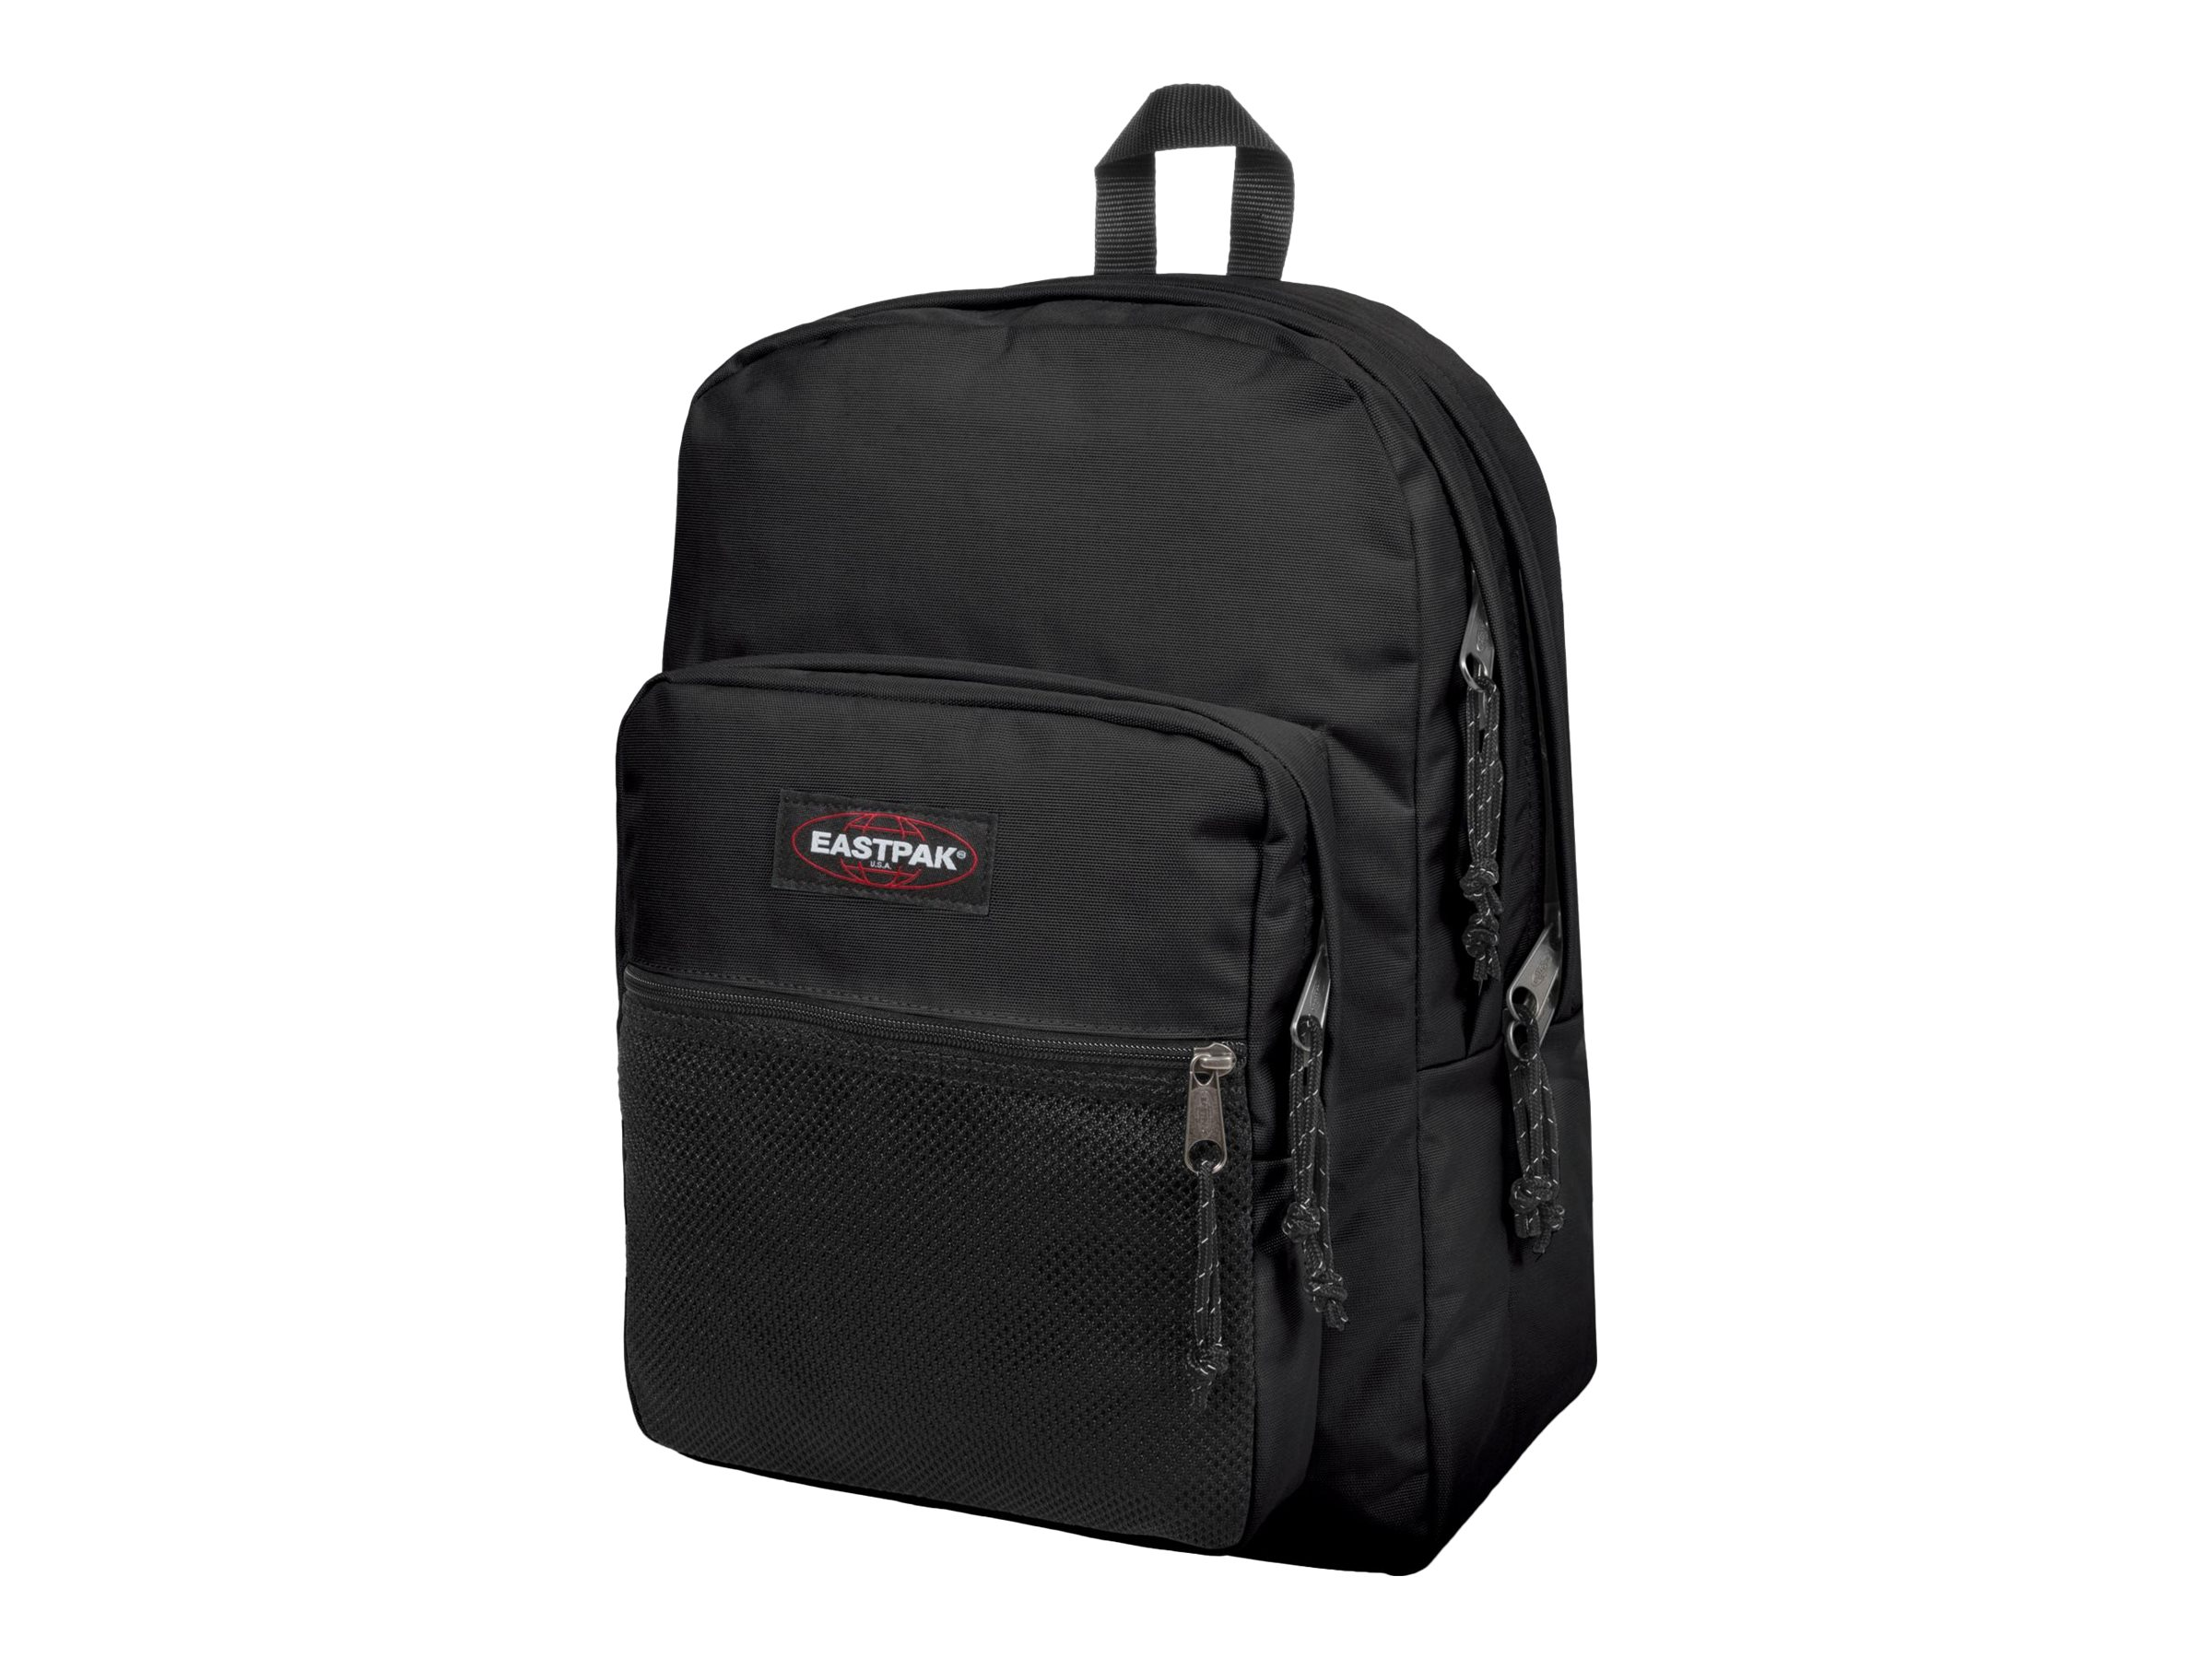 EASTPAK Pinnacle - Sac à dos 2 compartiments - 42 cm - Black